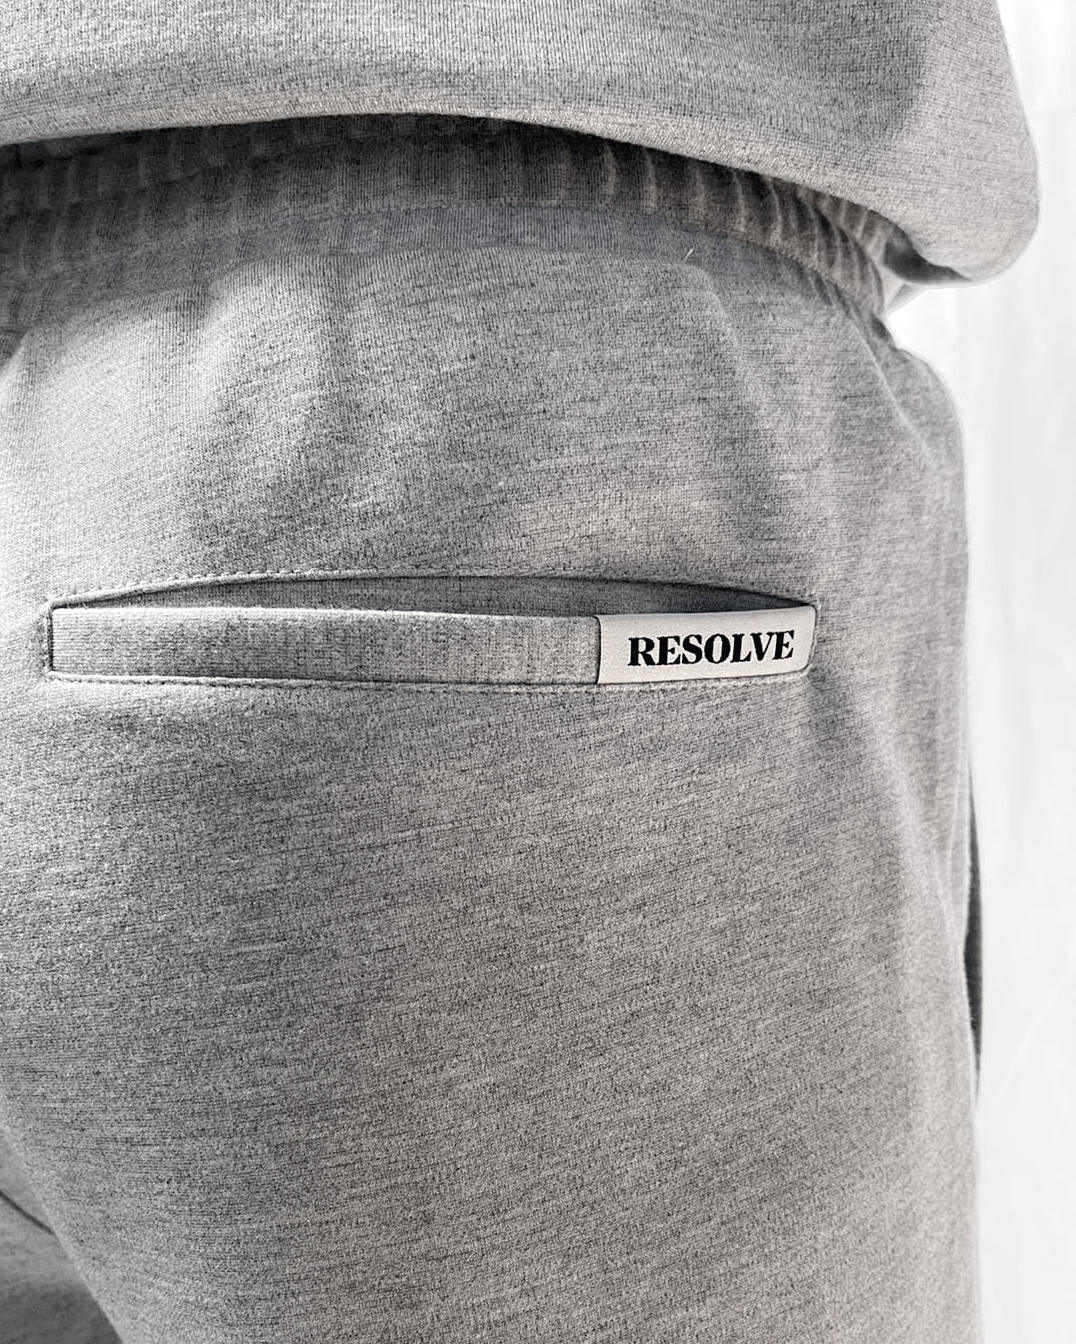 Resolve Clothing logo tag on grey casual joggers